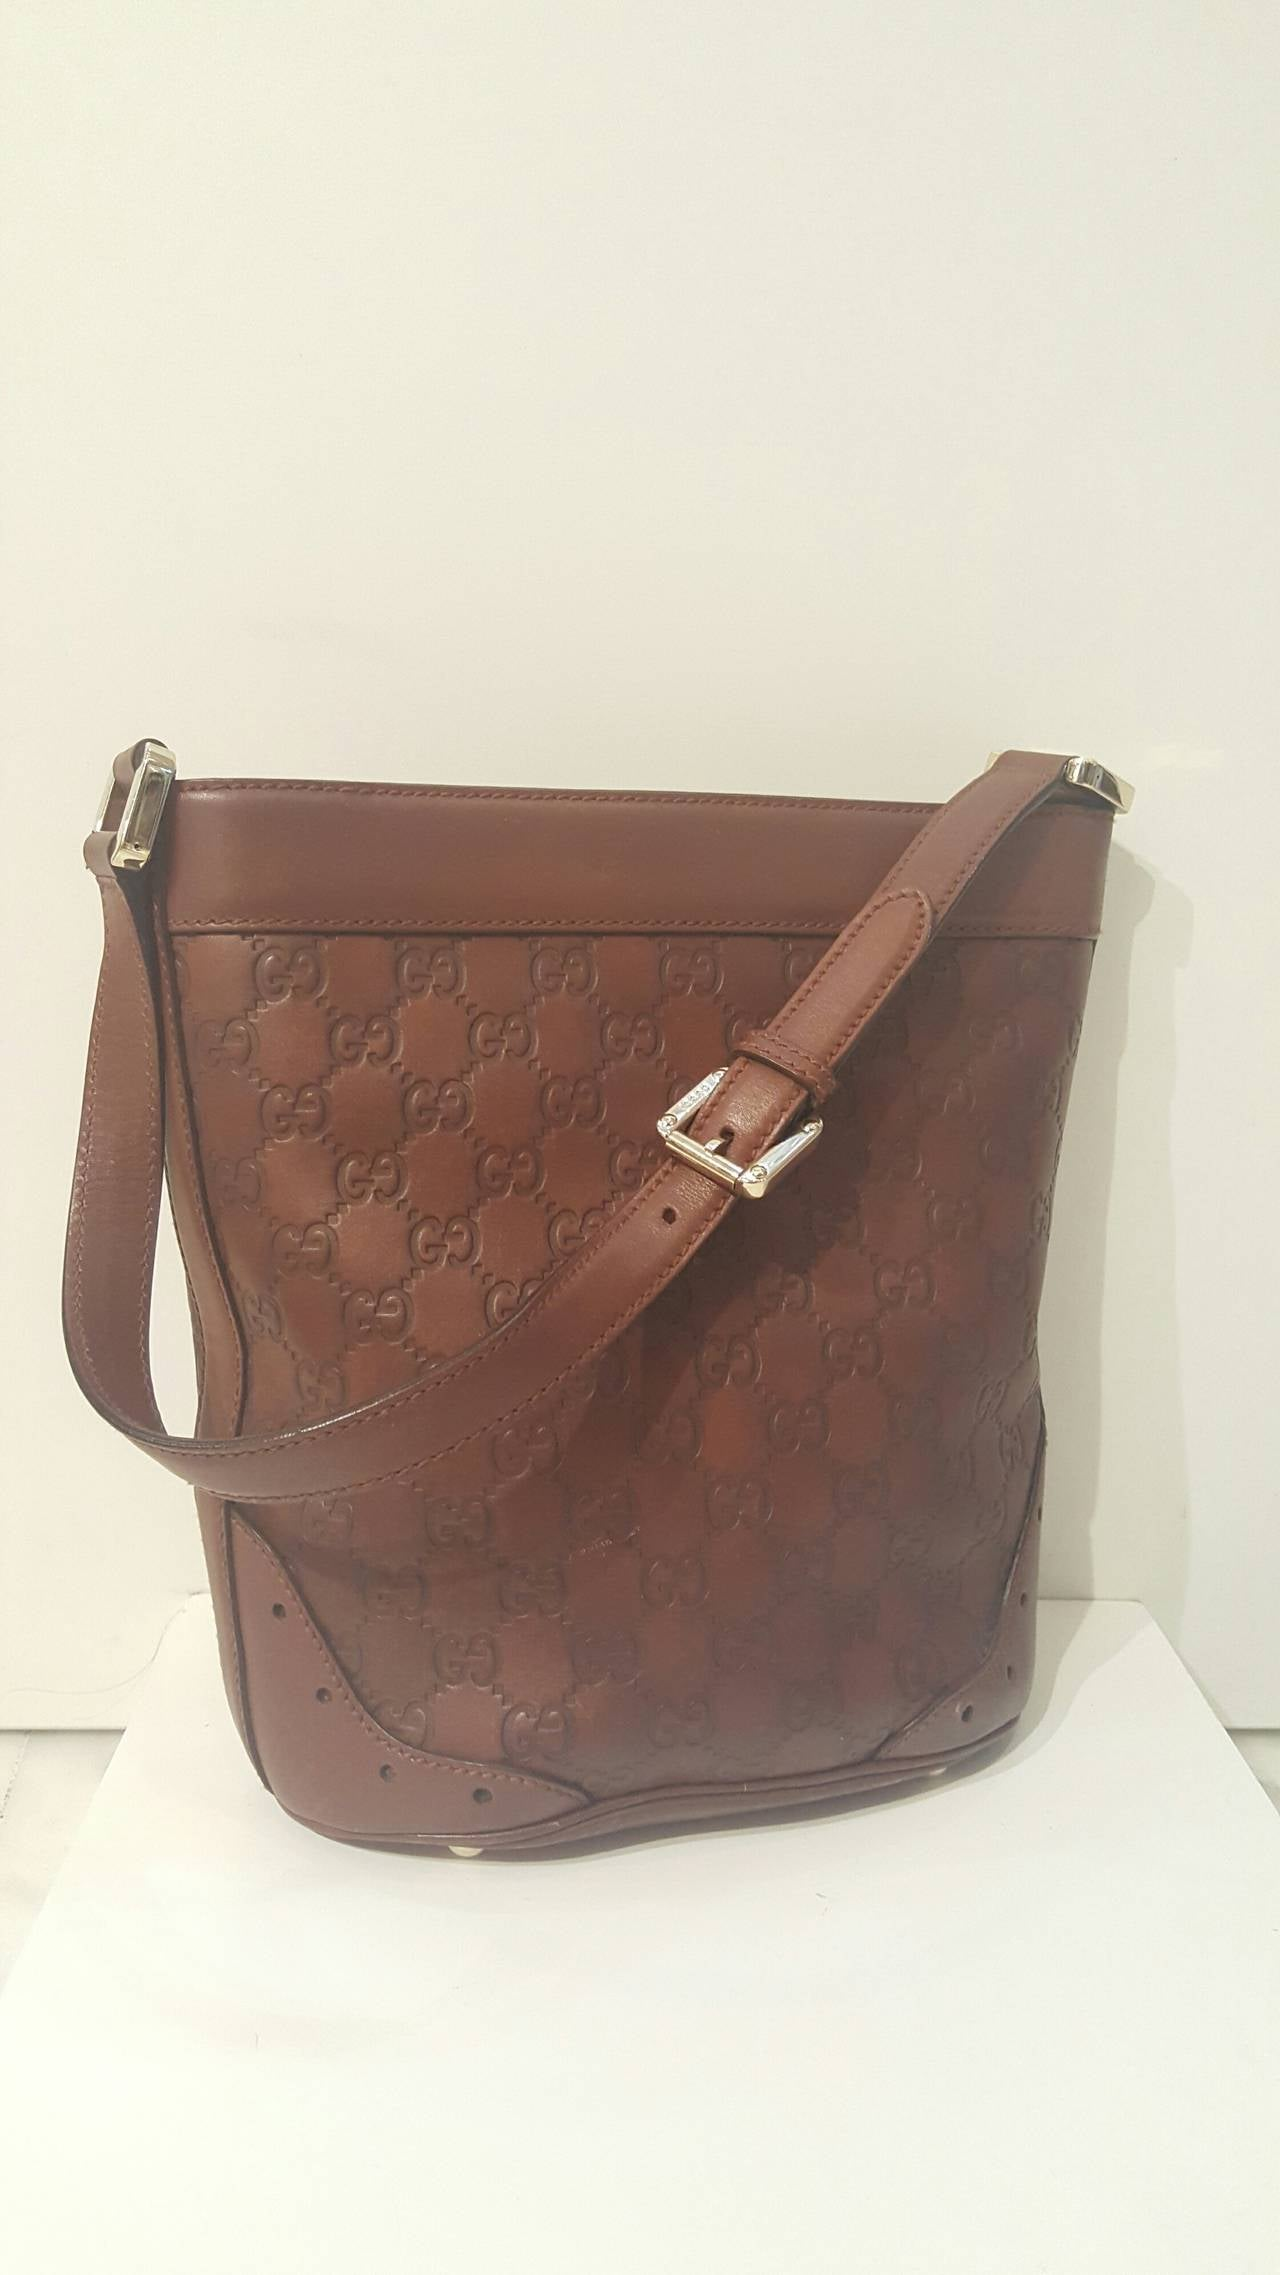 1990s Gucci Brown Leather Bag At 1stdibs